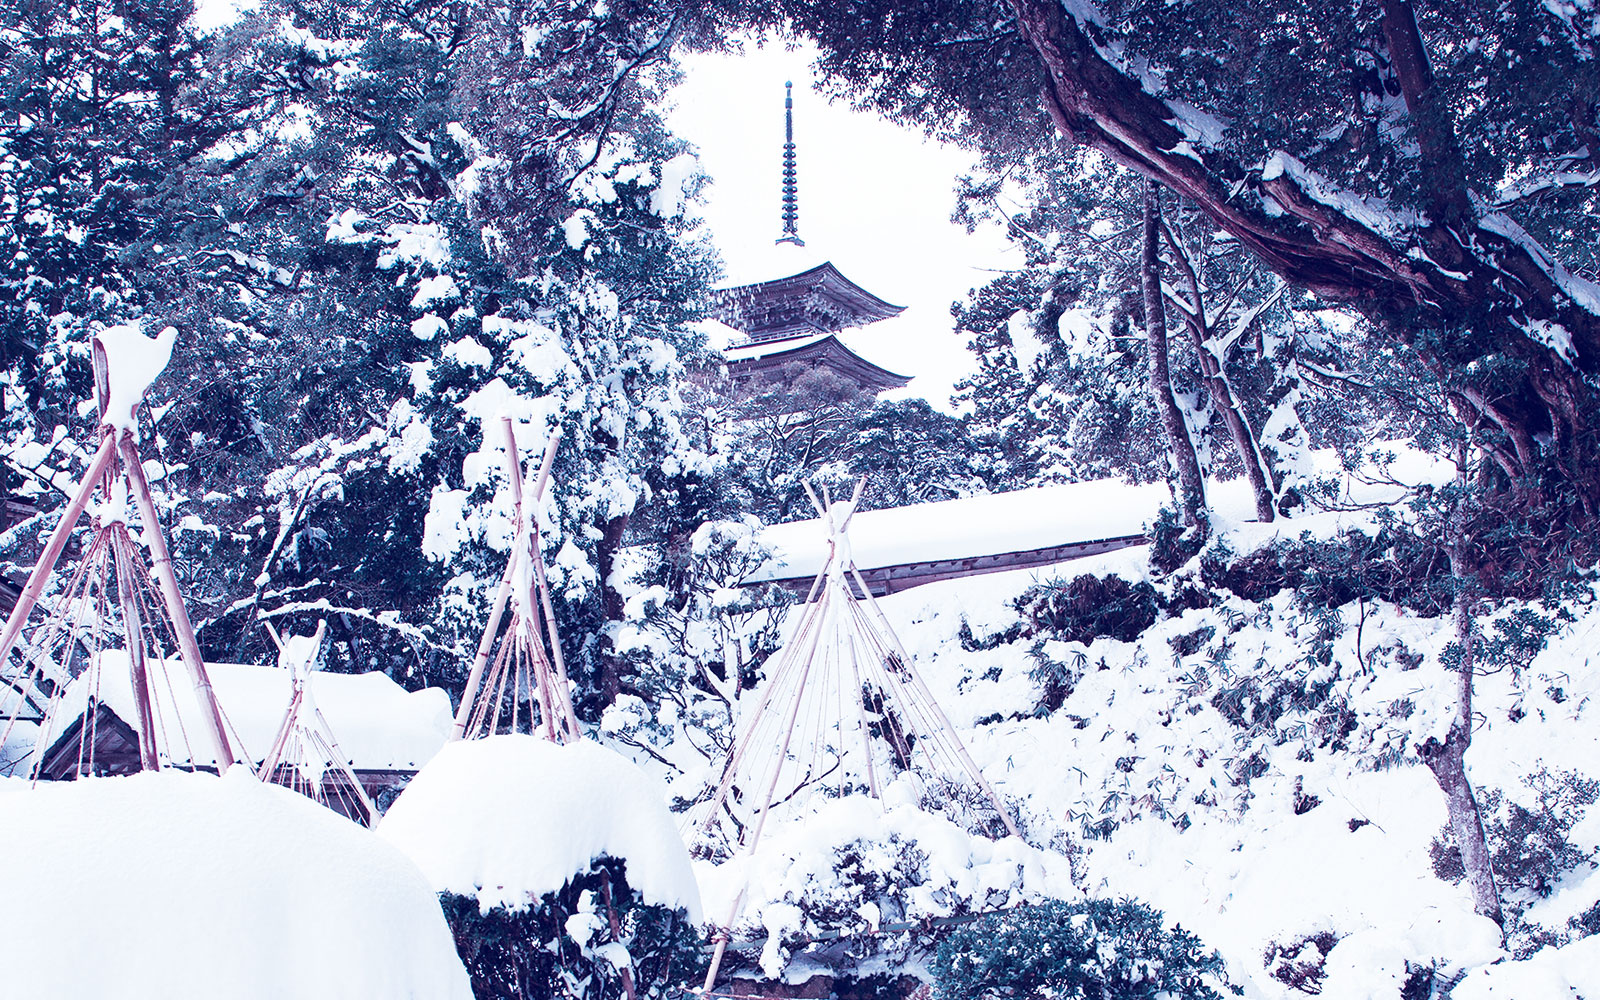 A splendid tower covered in snow